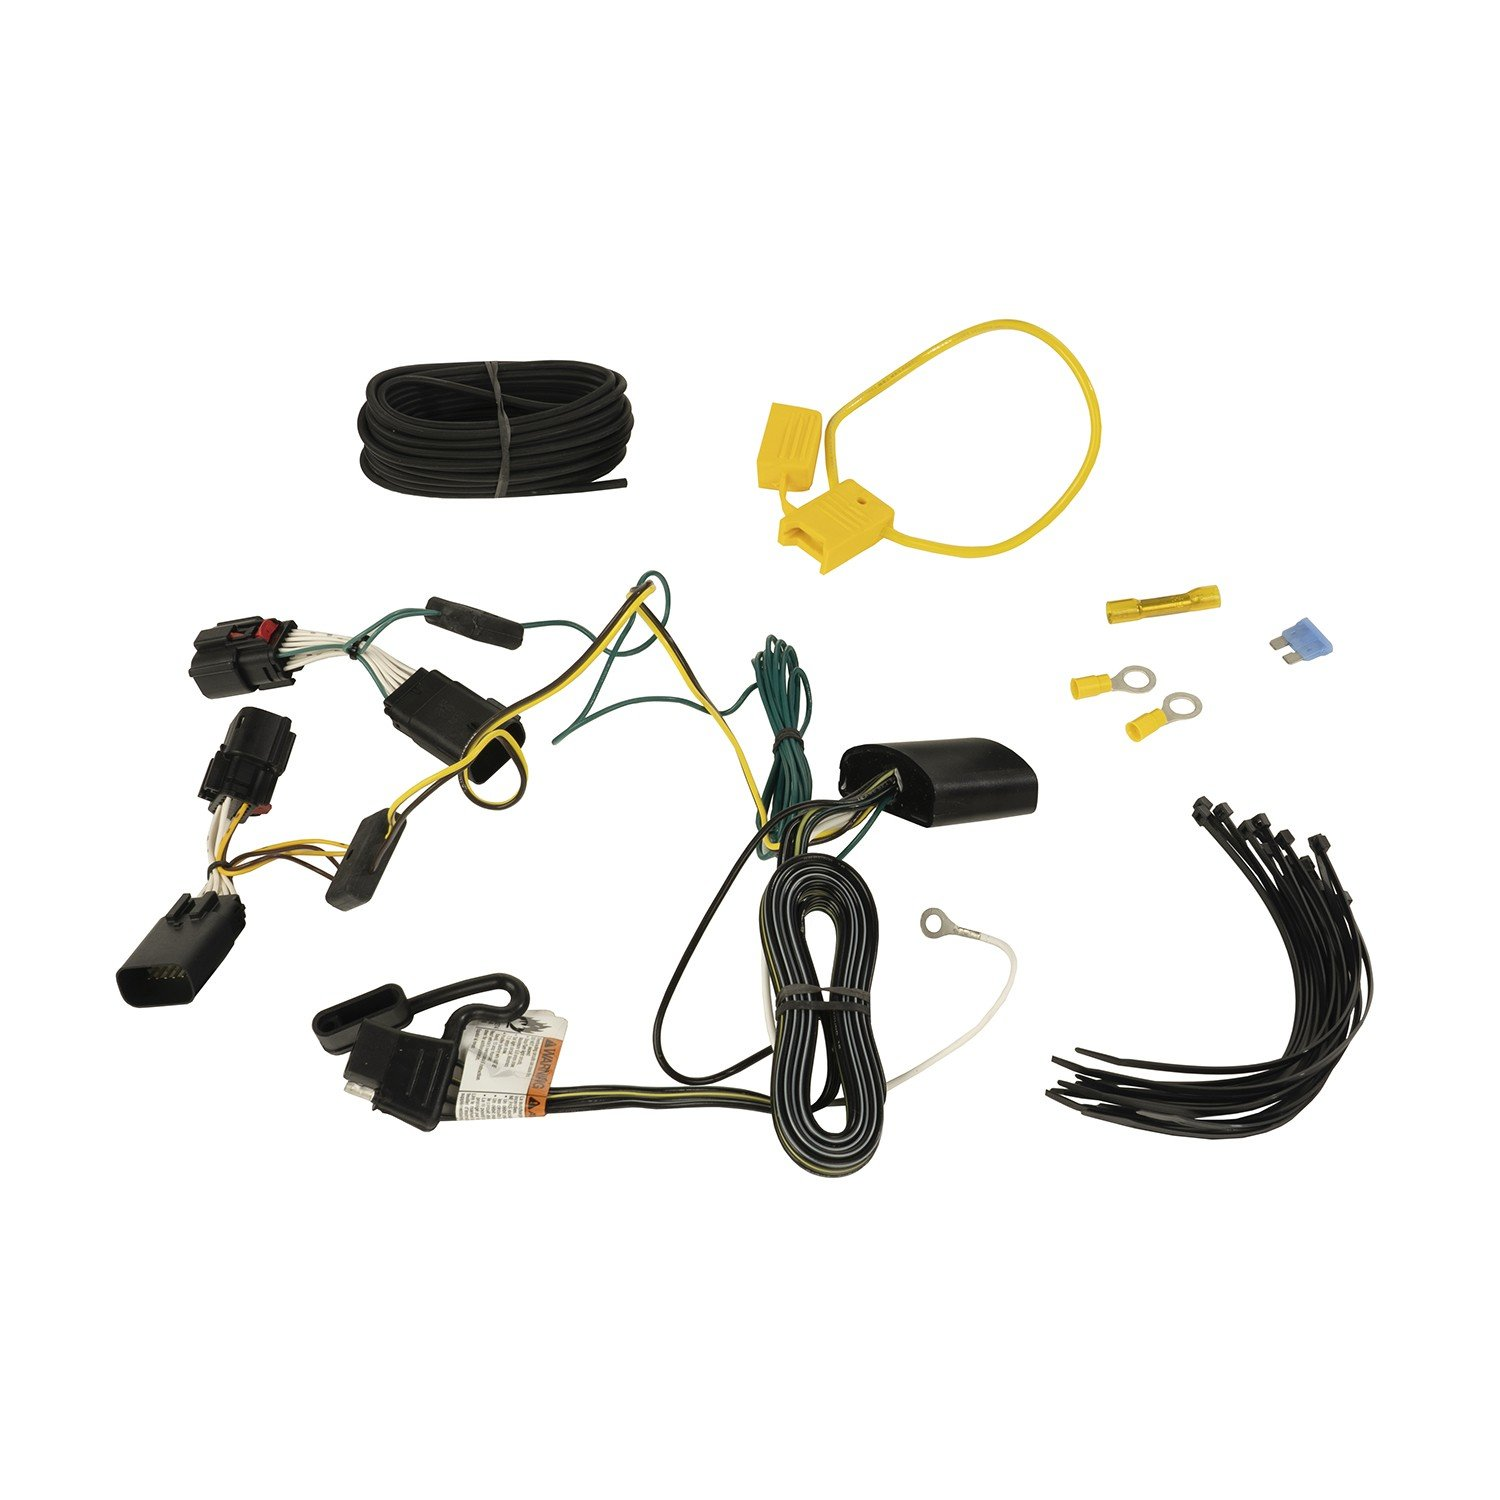 hight resolution of rugged ridge 17275 04 hitch wiring harness for 18 19 jeep wrangler jl